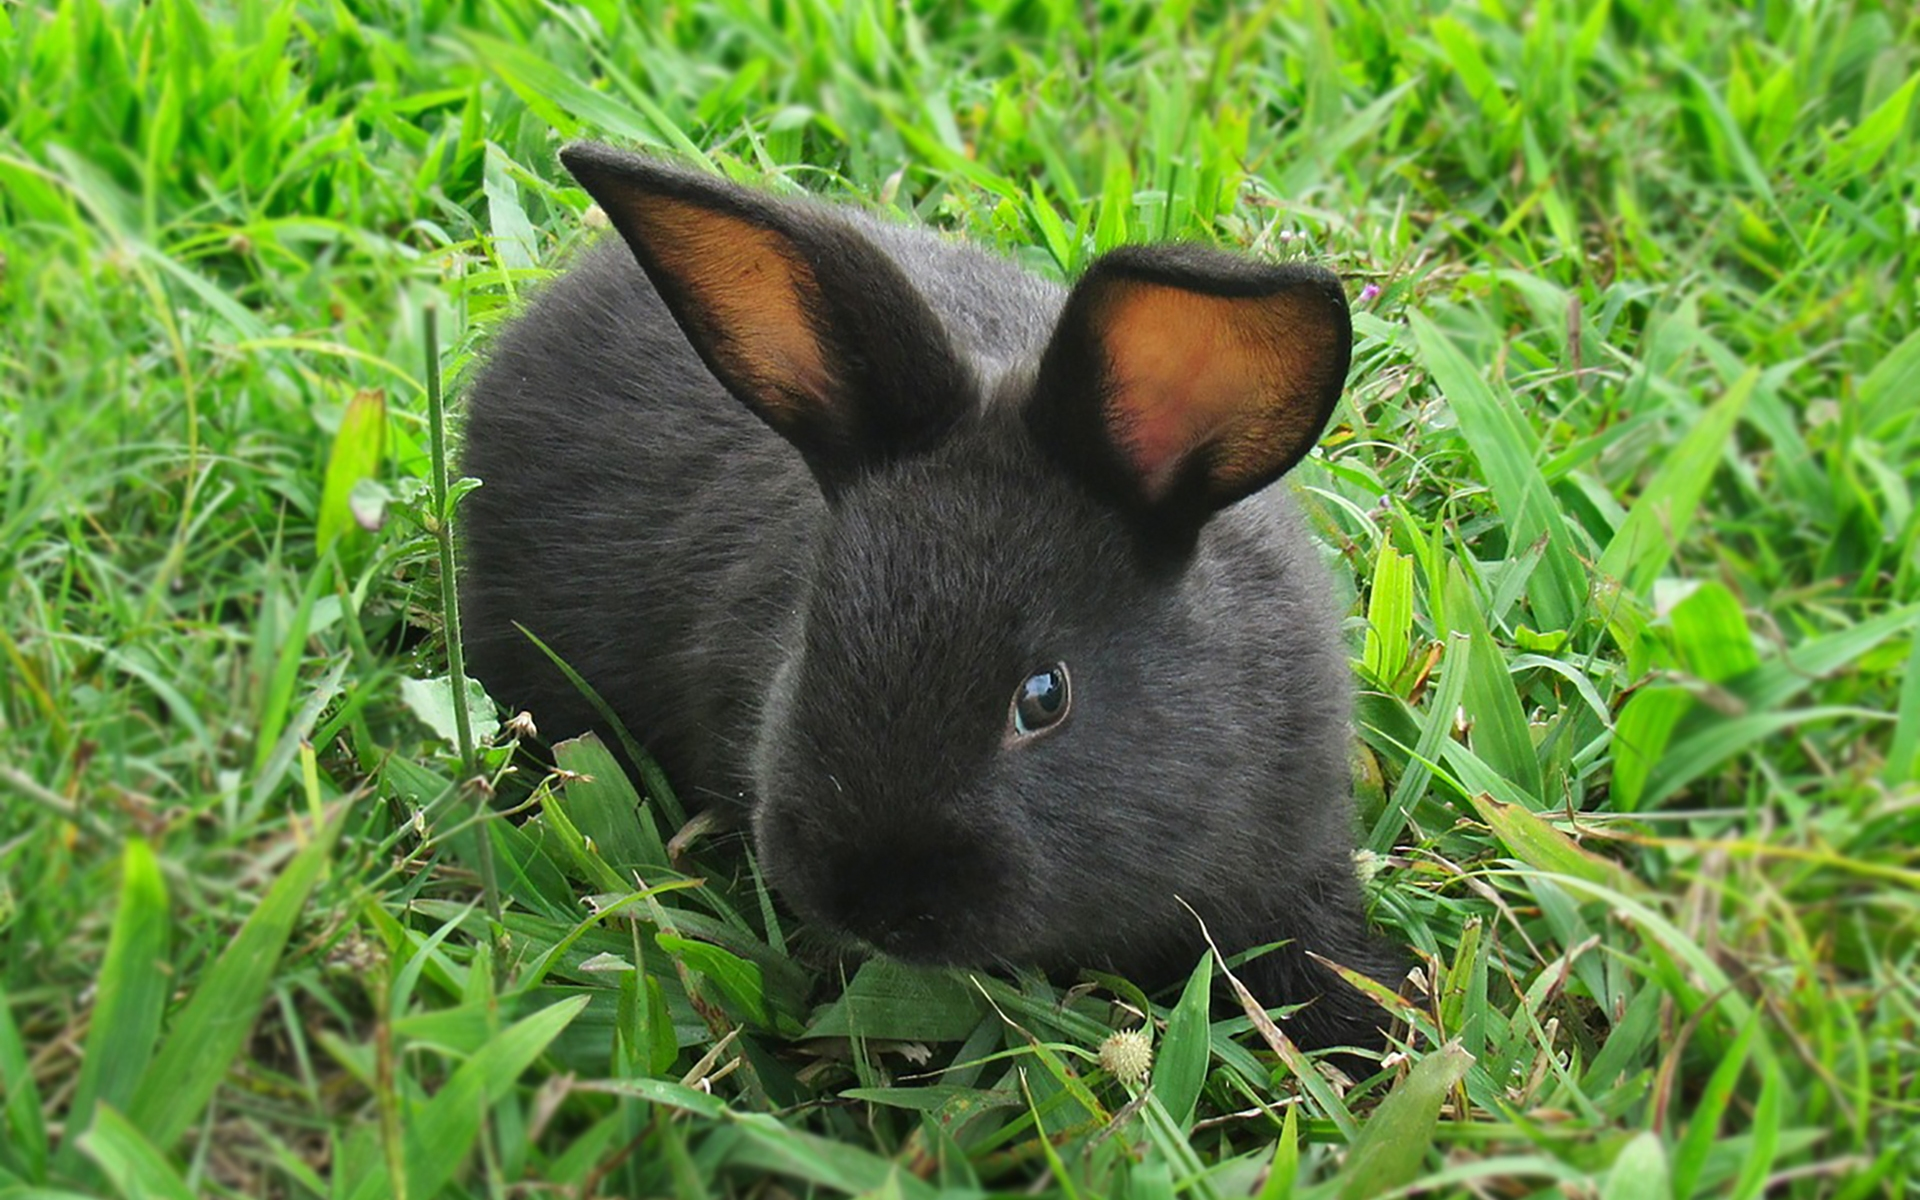 Blossom the little black rabbit enjoying the soft green grass in the farm's garden.